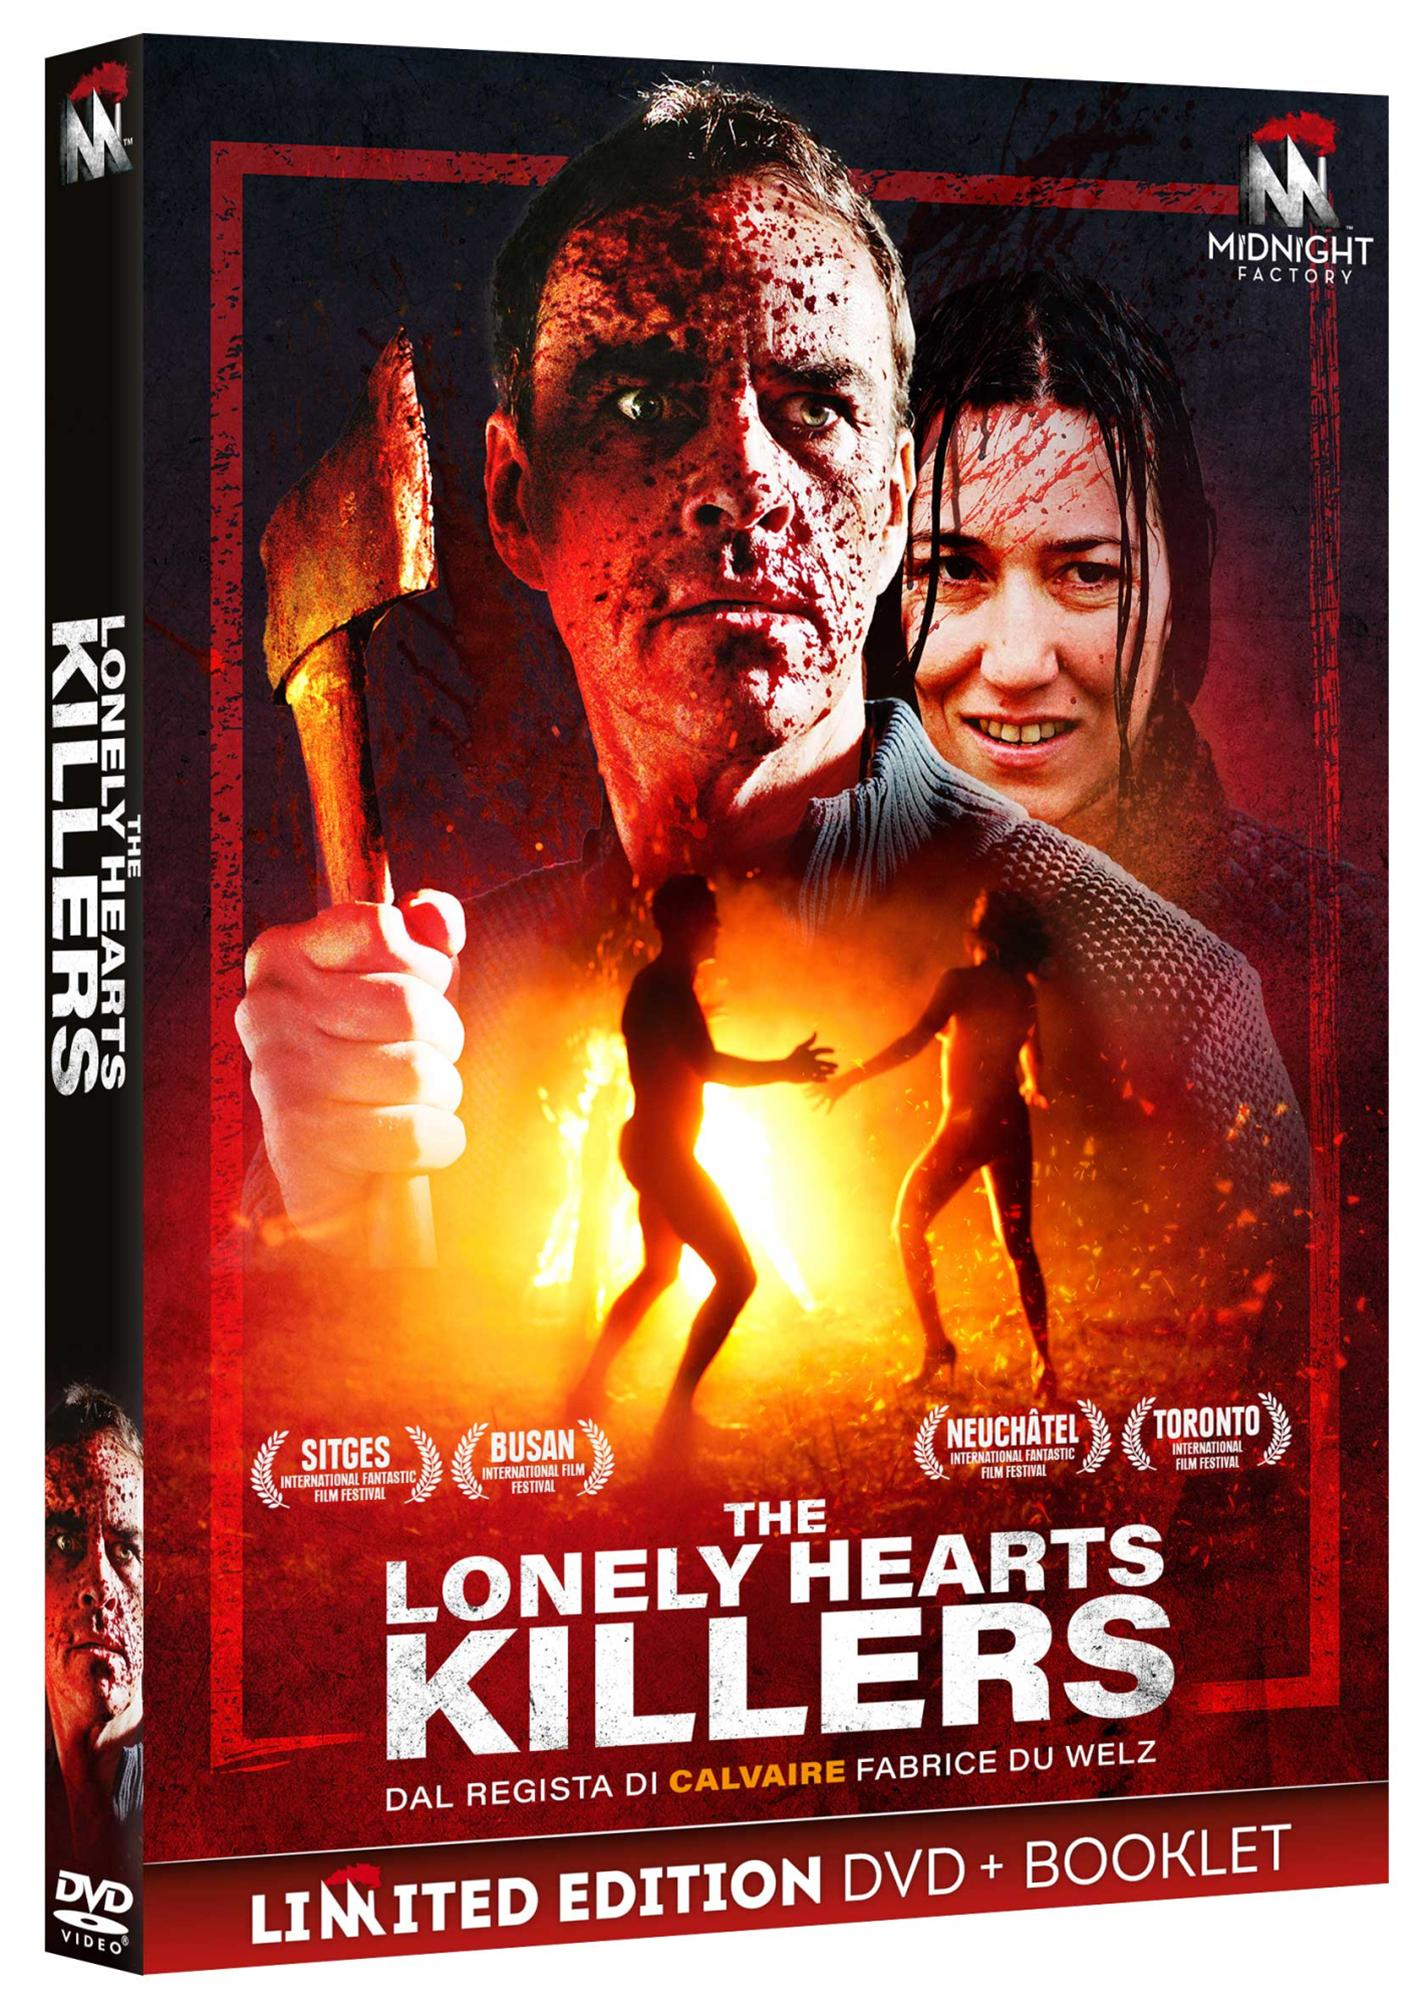 THE LONELY HEARTS KILLERS (DVD+BOOKLET) (DVD)